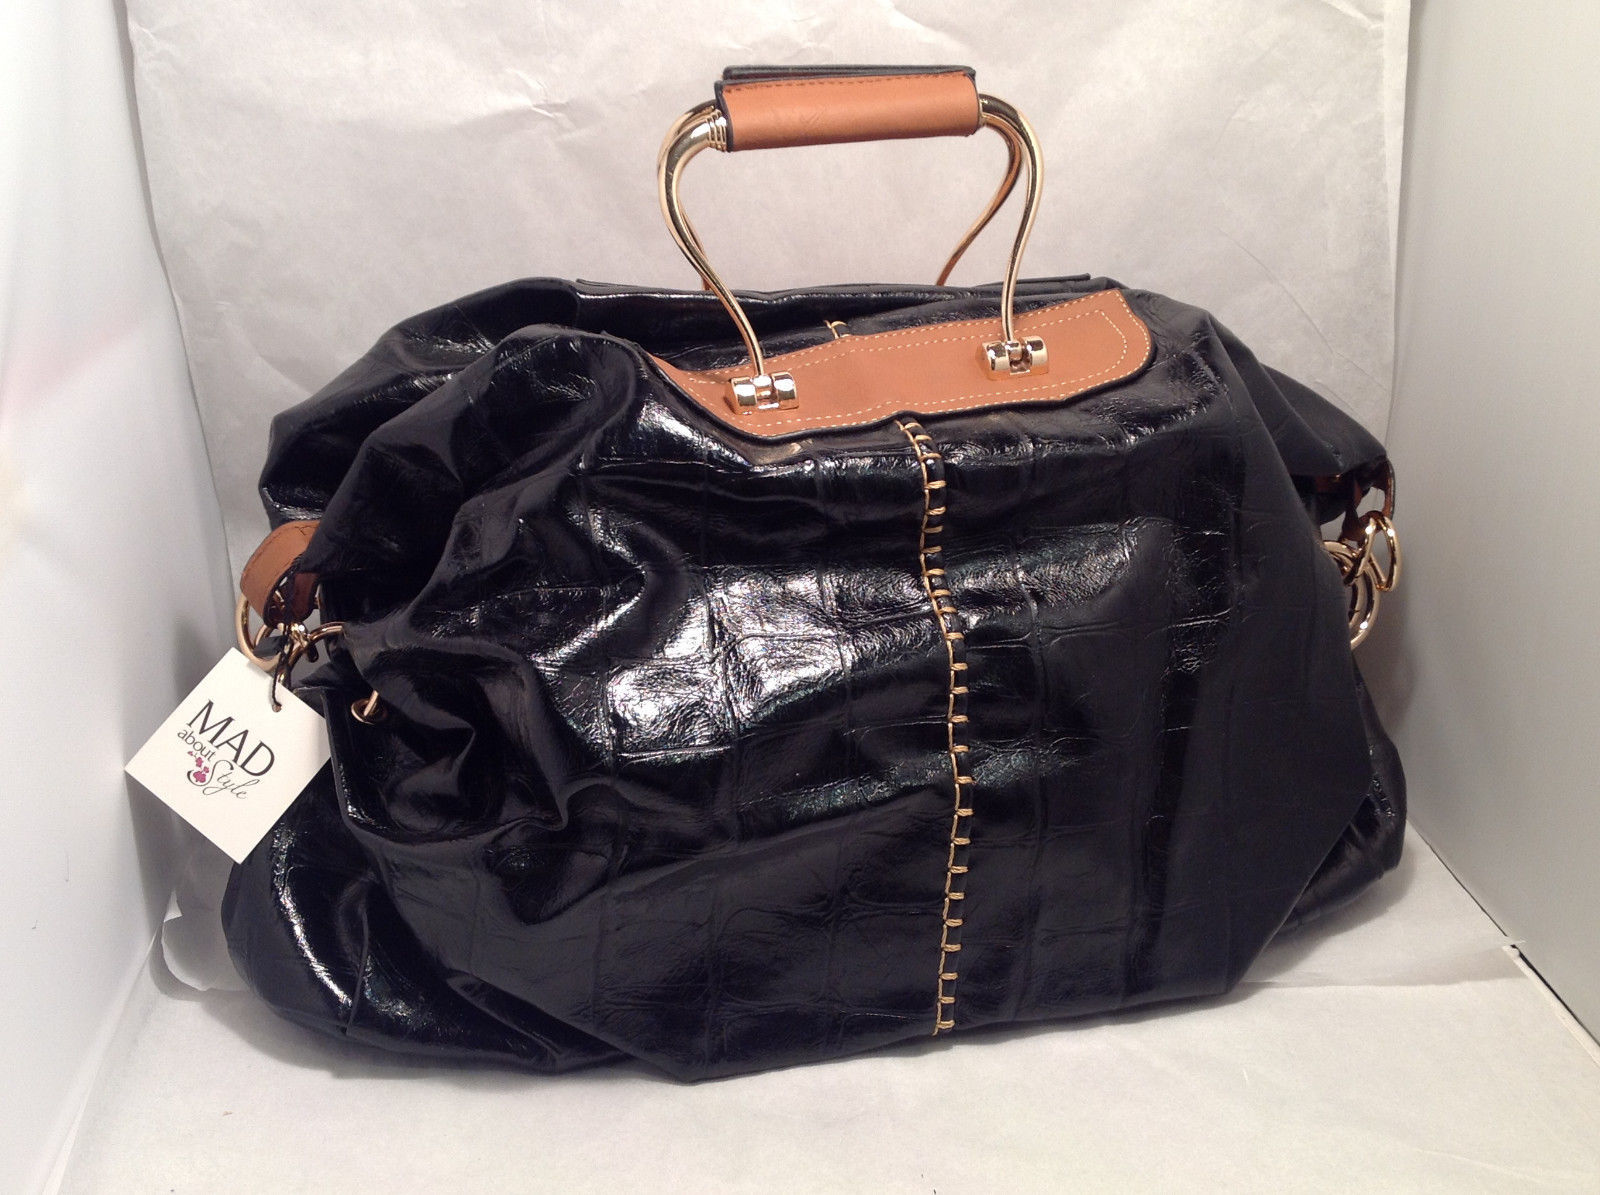 Mad About Style Doctor Bowler Handbag Purse Black Patent Leather Look Brown Trim